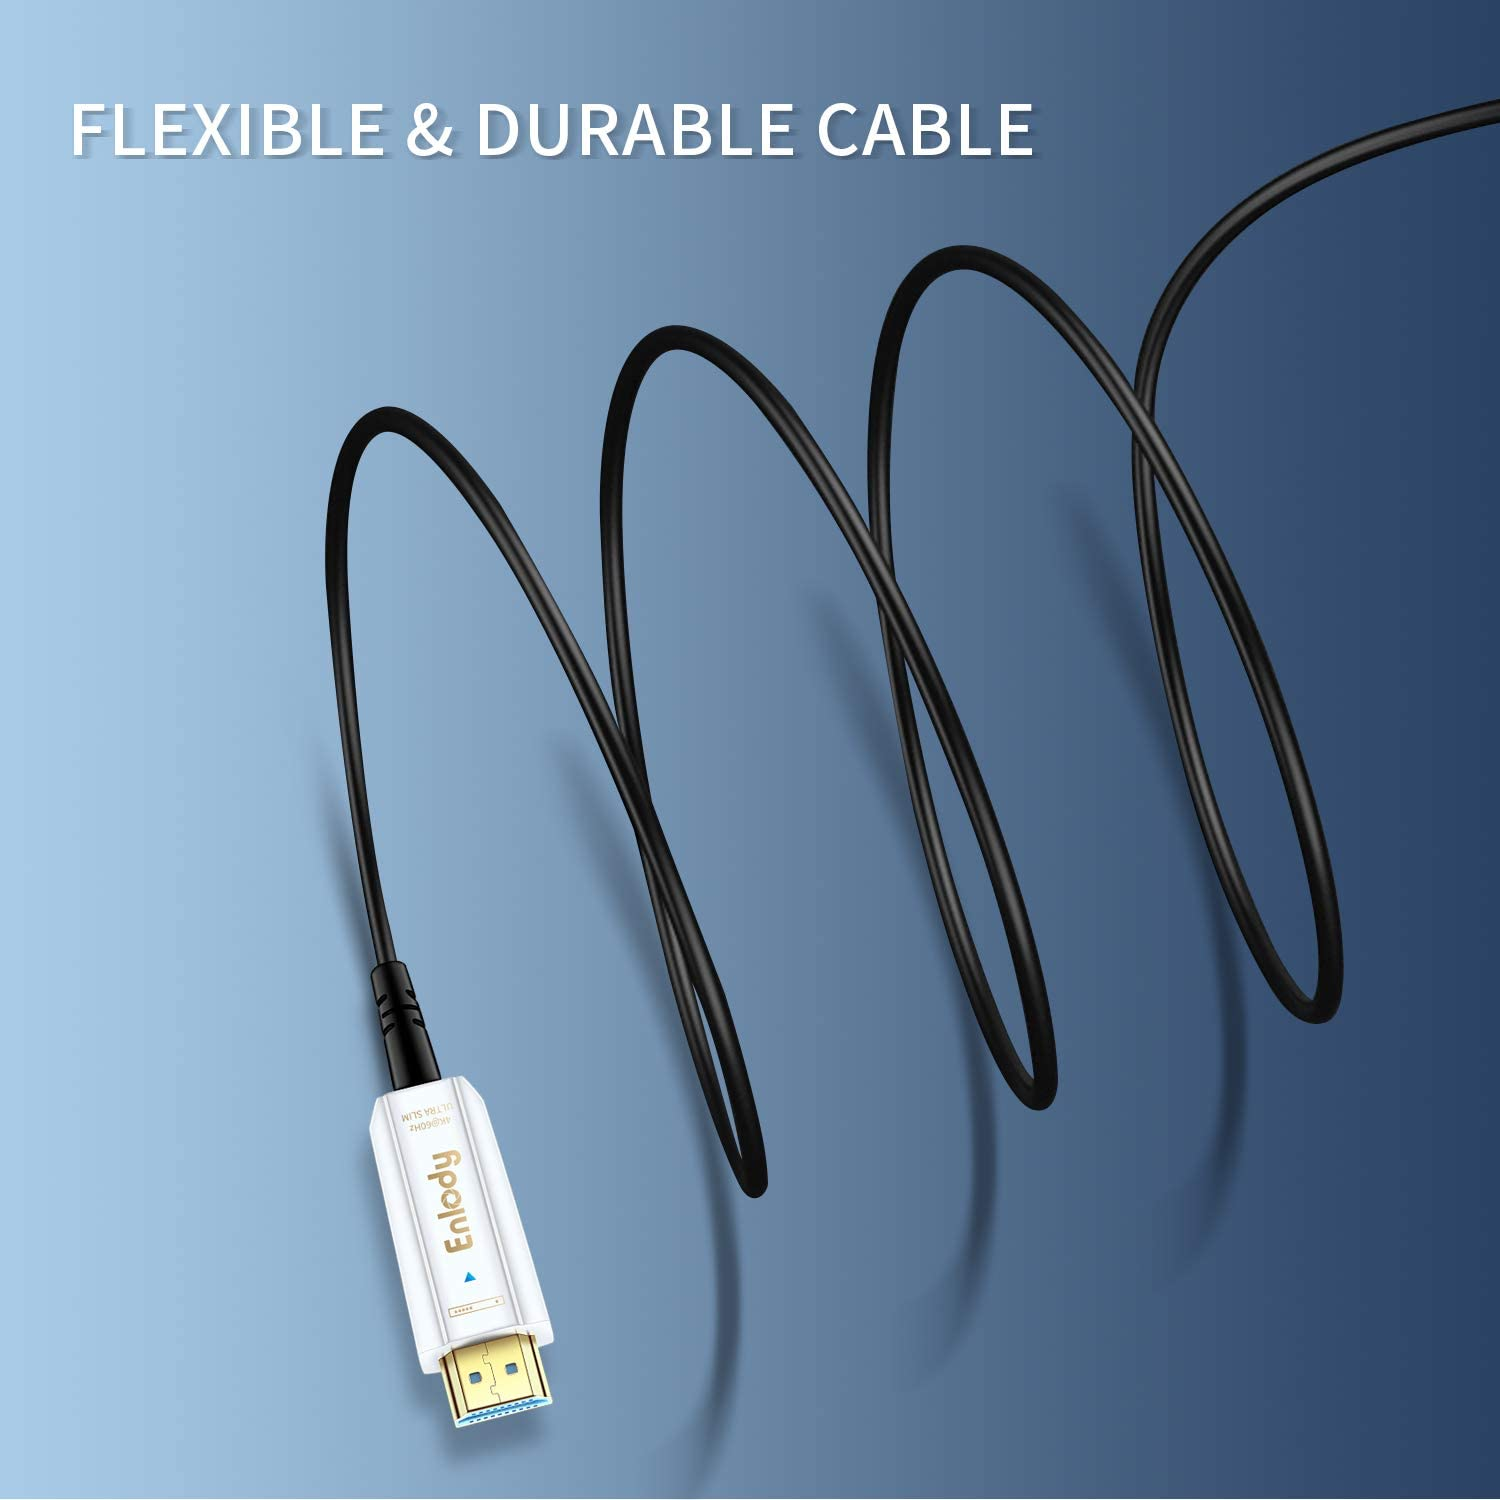 HDCP 2.2 10m HDR Fiber Optic HDMI Cable 30ft 3D 4K@60Hz Active Optical HDMI Cable 2.0 Support 18Gbps AOC YUV 4:4:4 Enlody High Speed